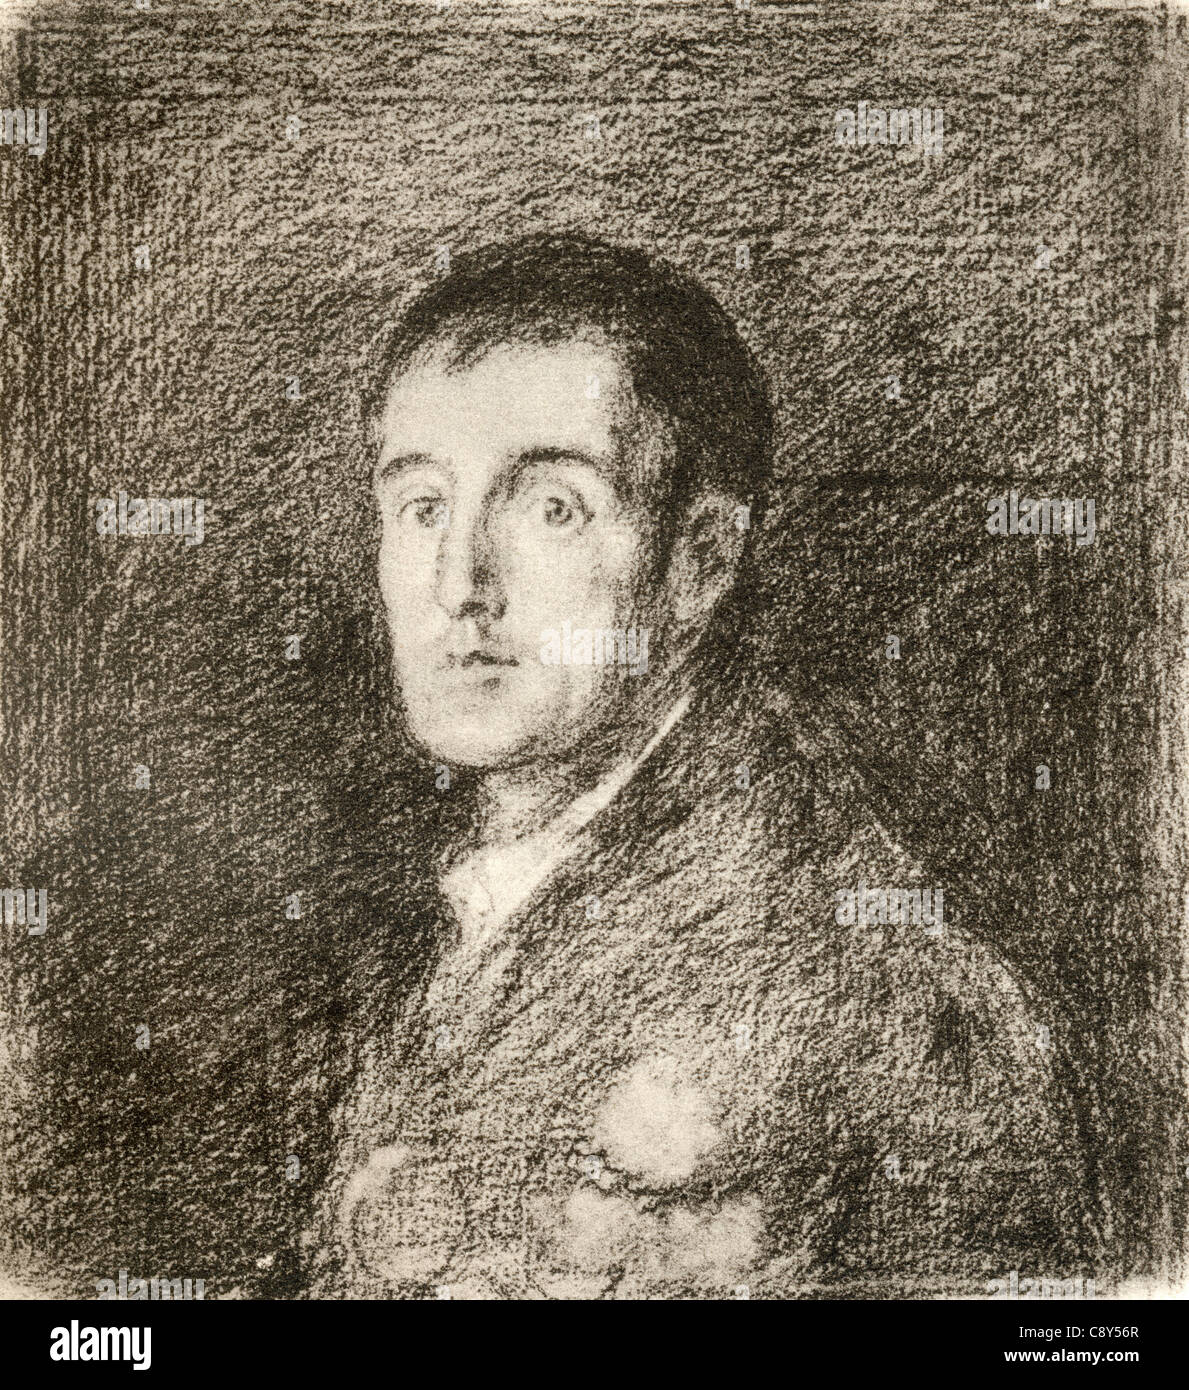 Arthur Wellesley, 1st Duke of Wellington, 1769 - 1852, after the work by Francisco de Goya.   British soldier and - Stock Image